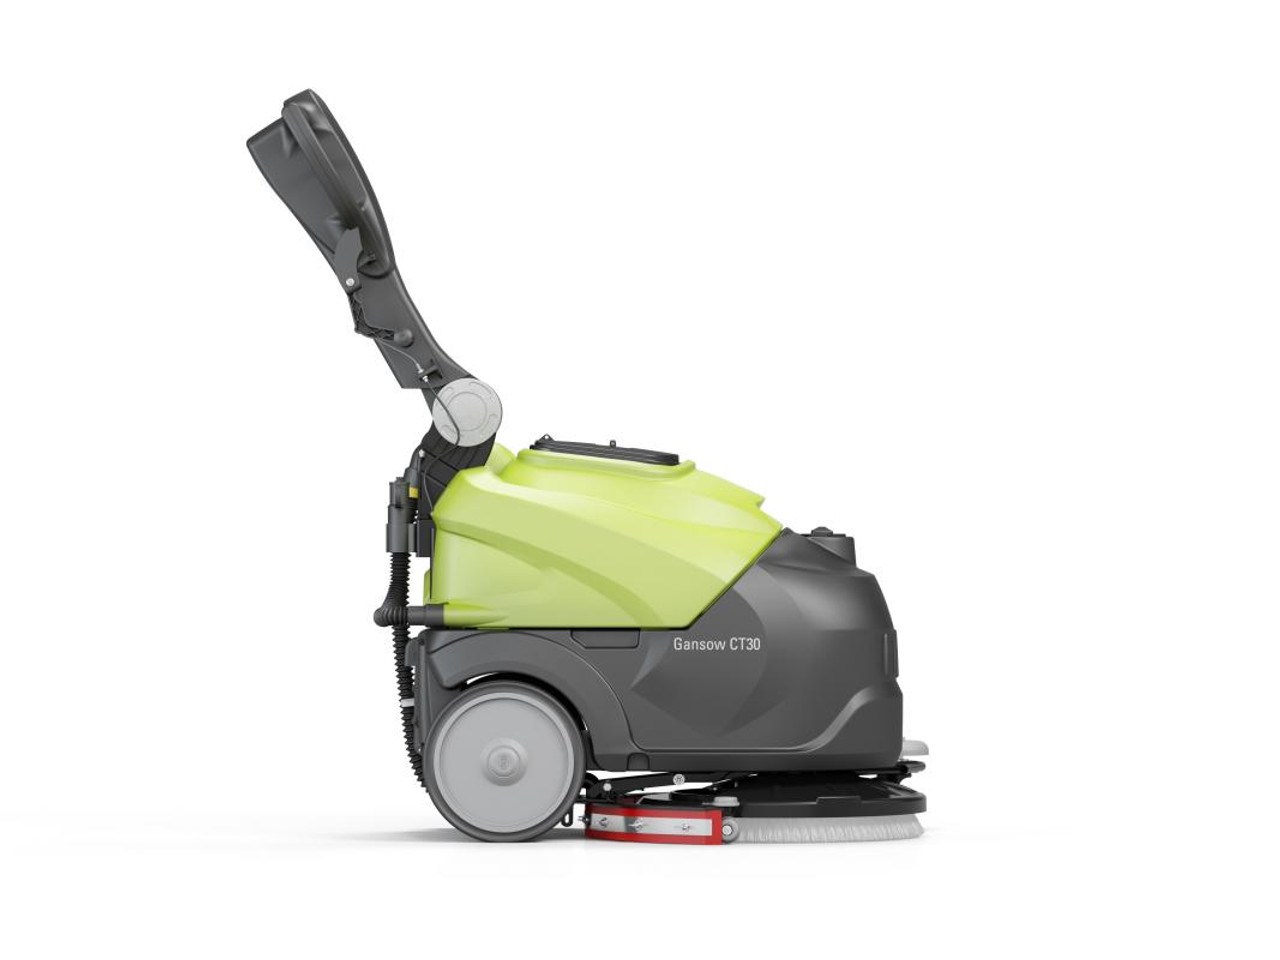 The Cleantime CT30 is compact in size for easy maneuverability